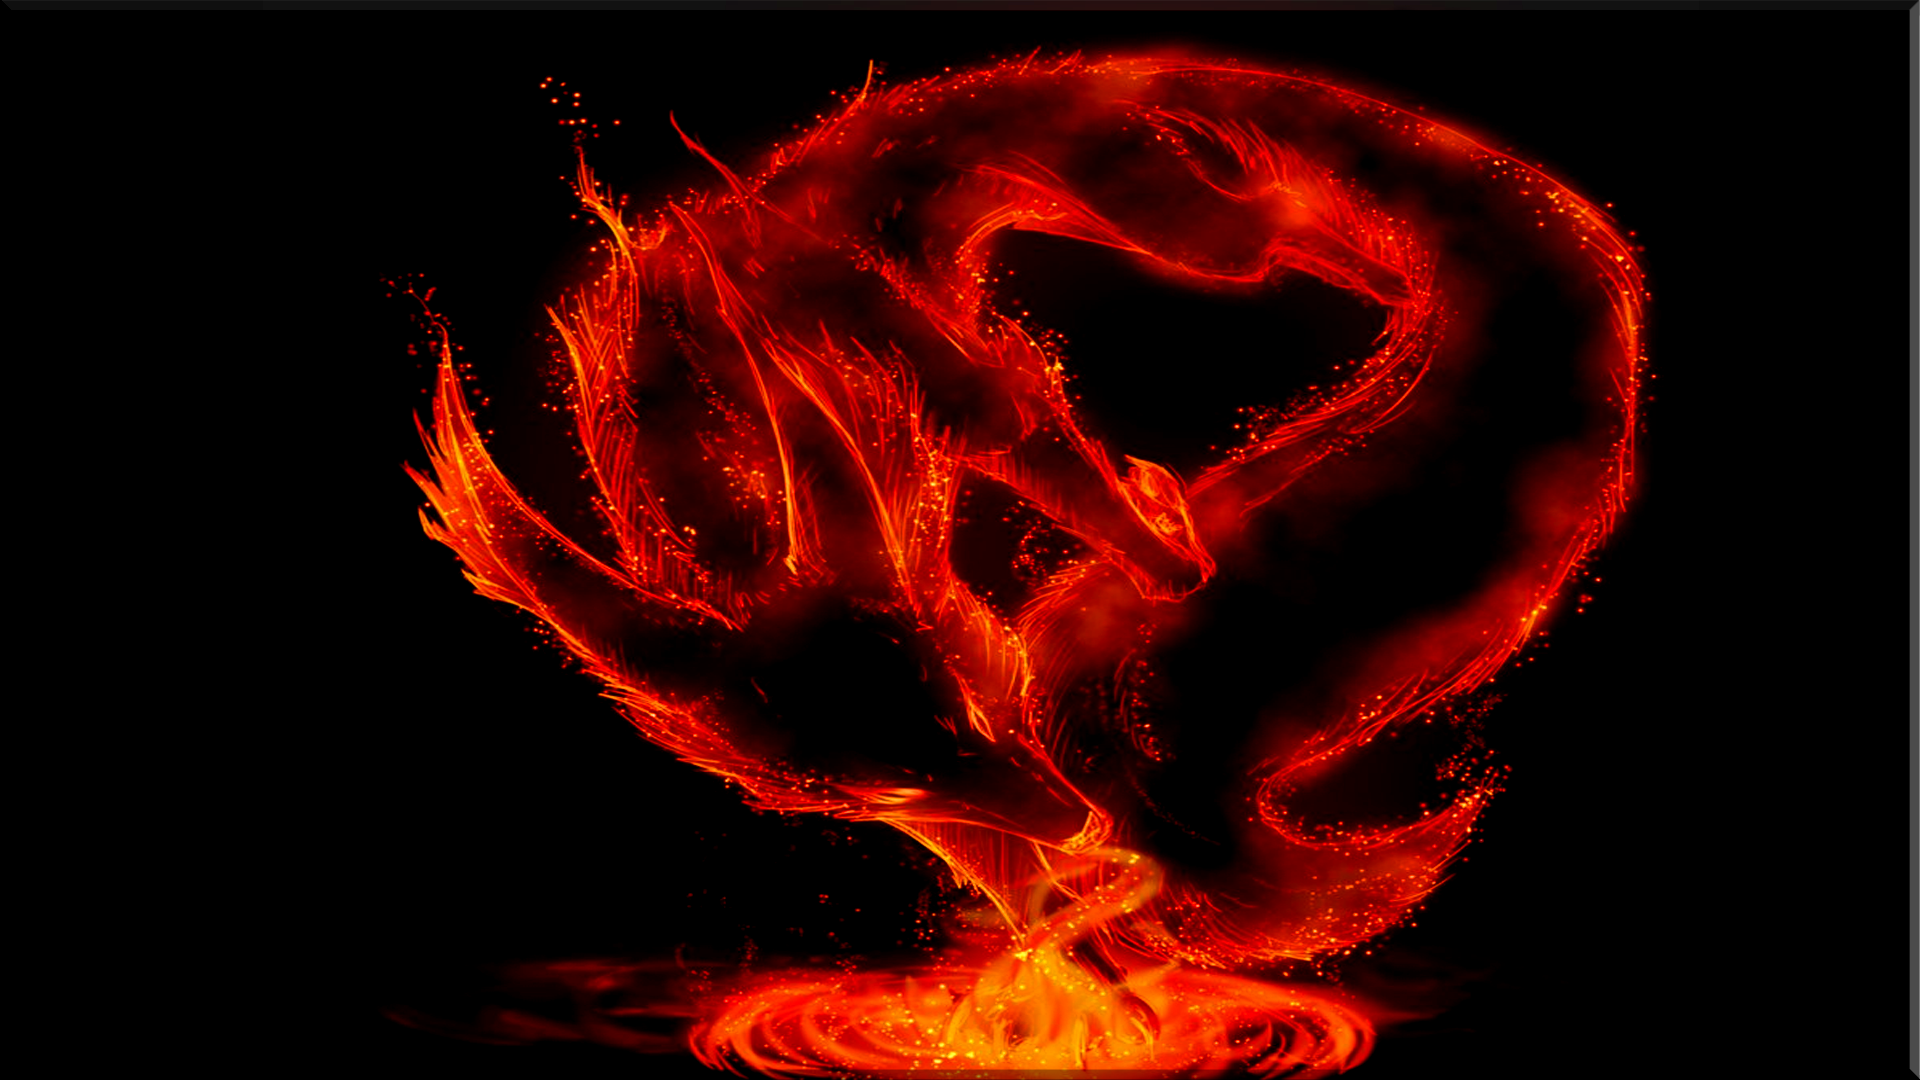 Fire Dragons Full HD Wallpaper And Background Image